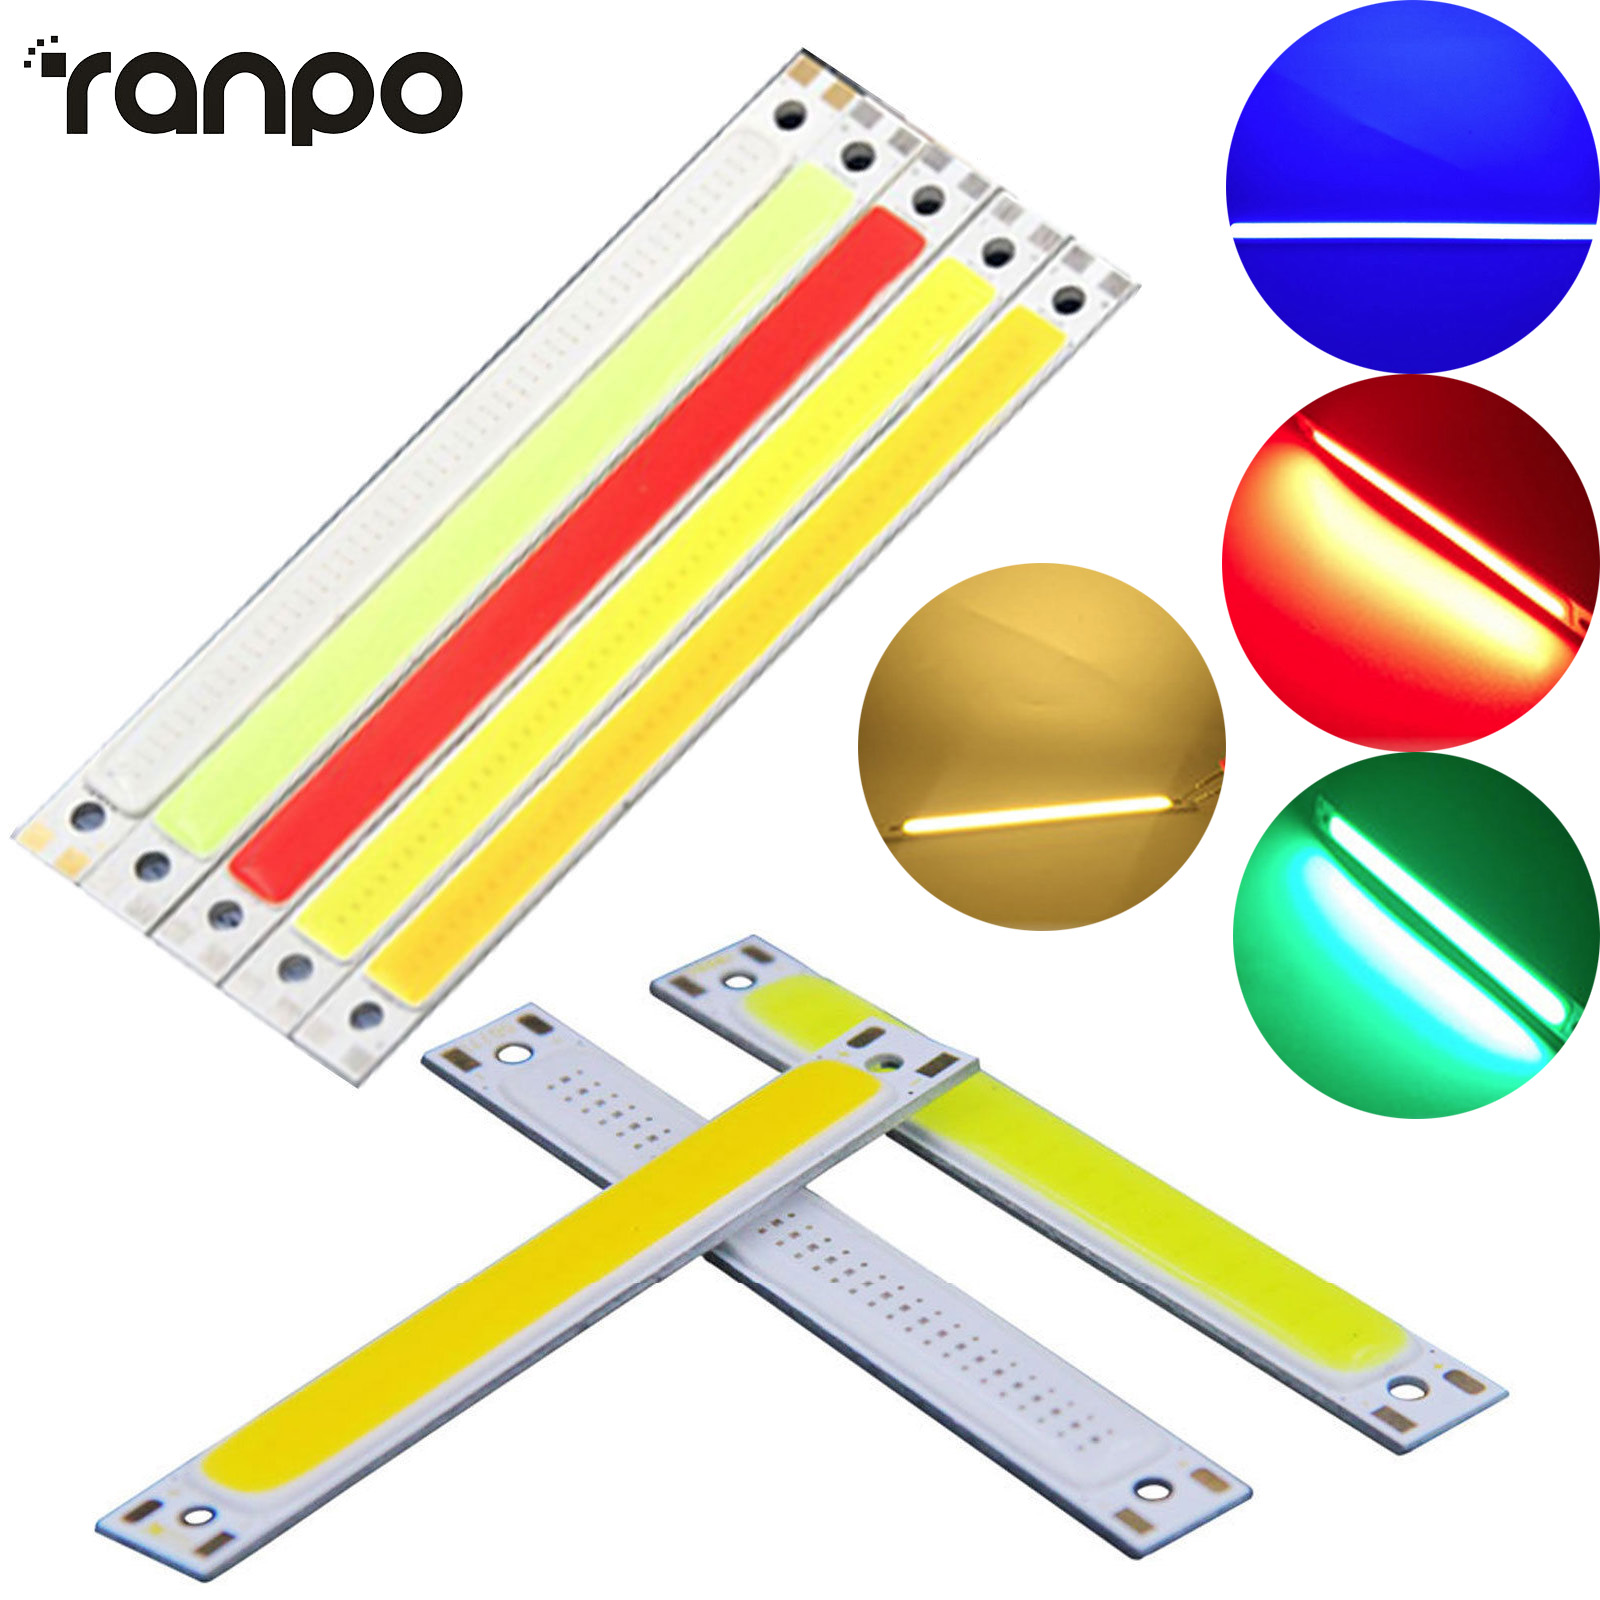 LED COB Light Strip Panel Lamp DC 12V 10W CarVehicle Floodlight Source Bulbs 5 Colors For DIY Lighting 120mm X 9mm